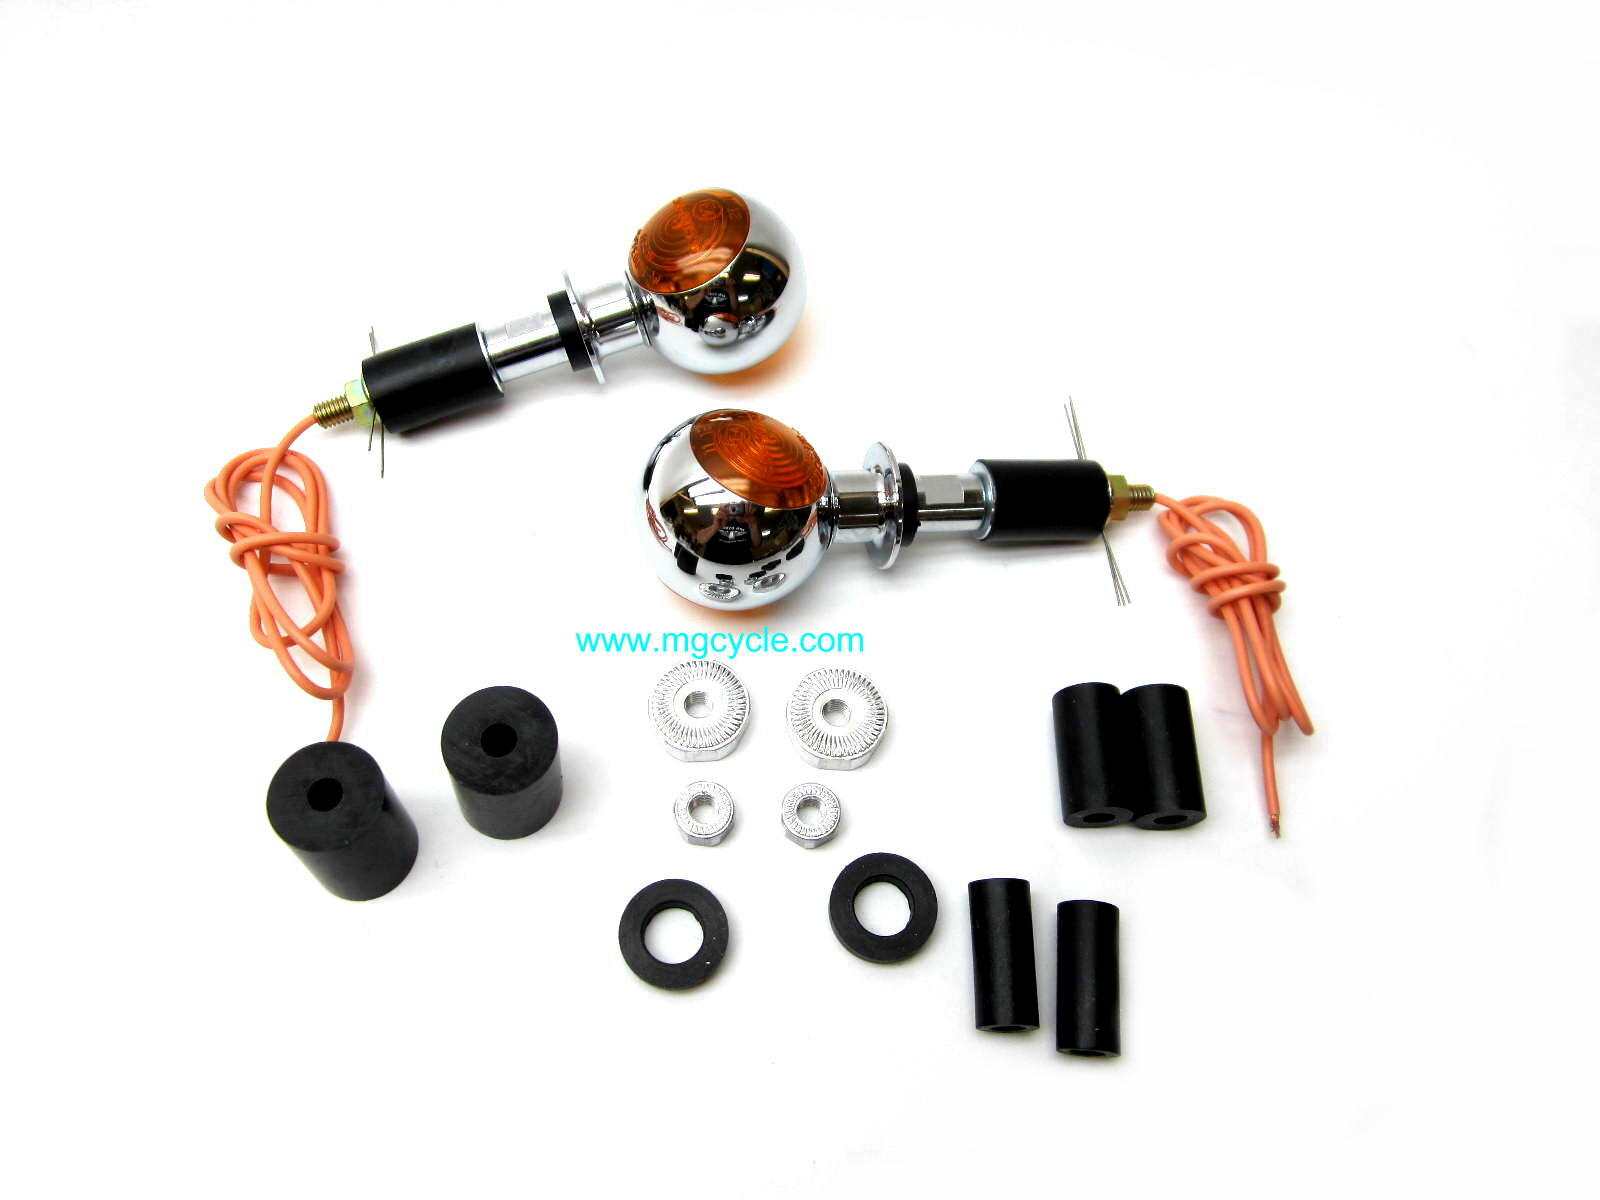 Clearance: Spherical bar end turn signal set